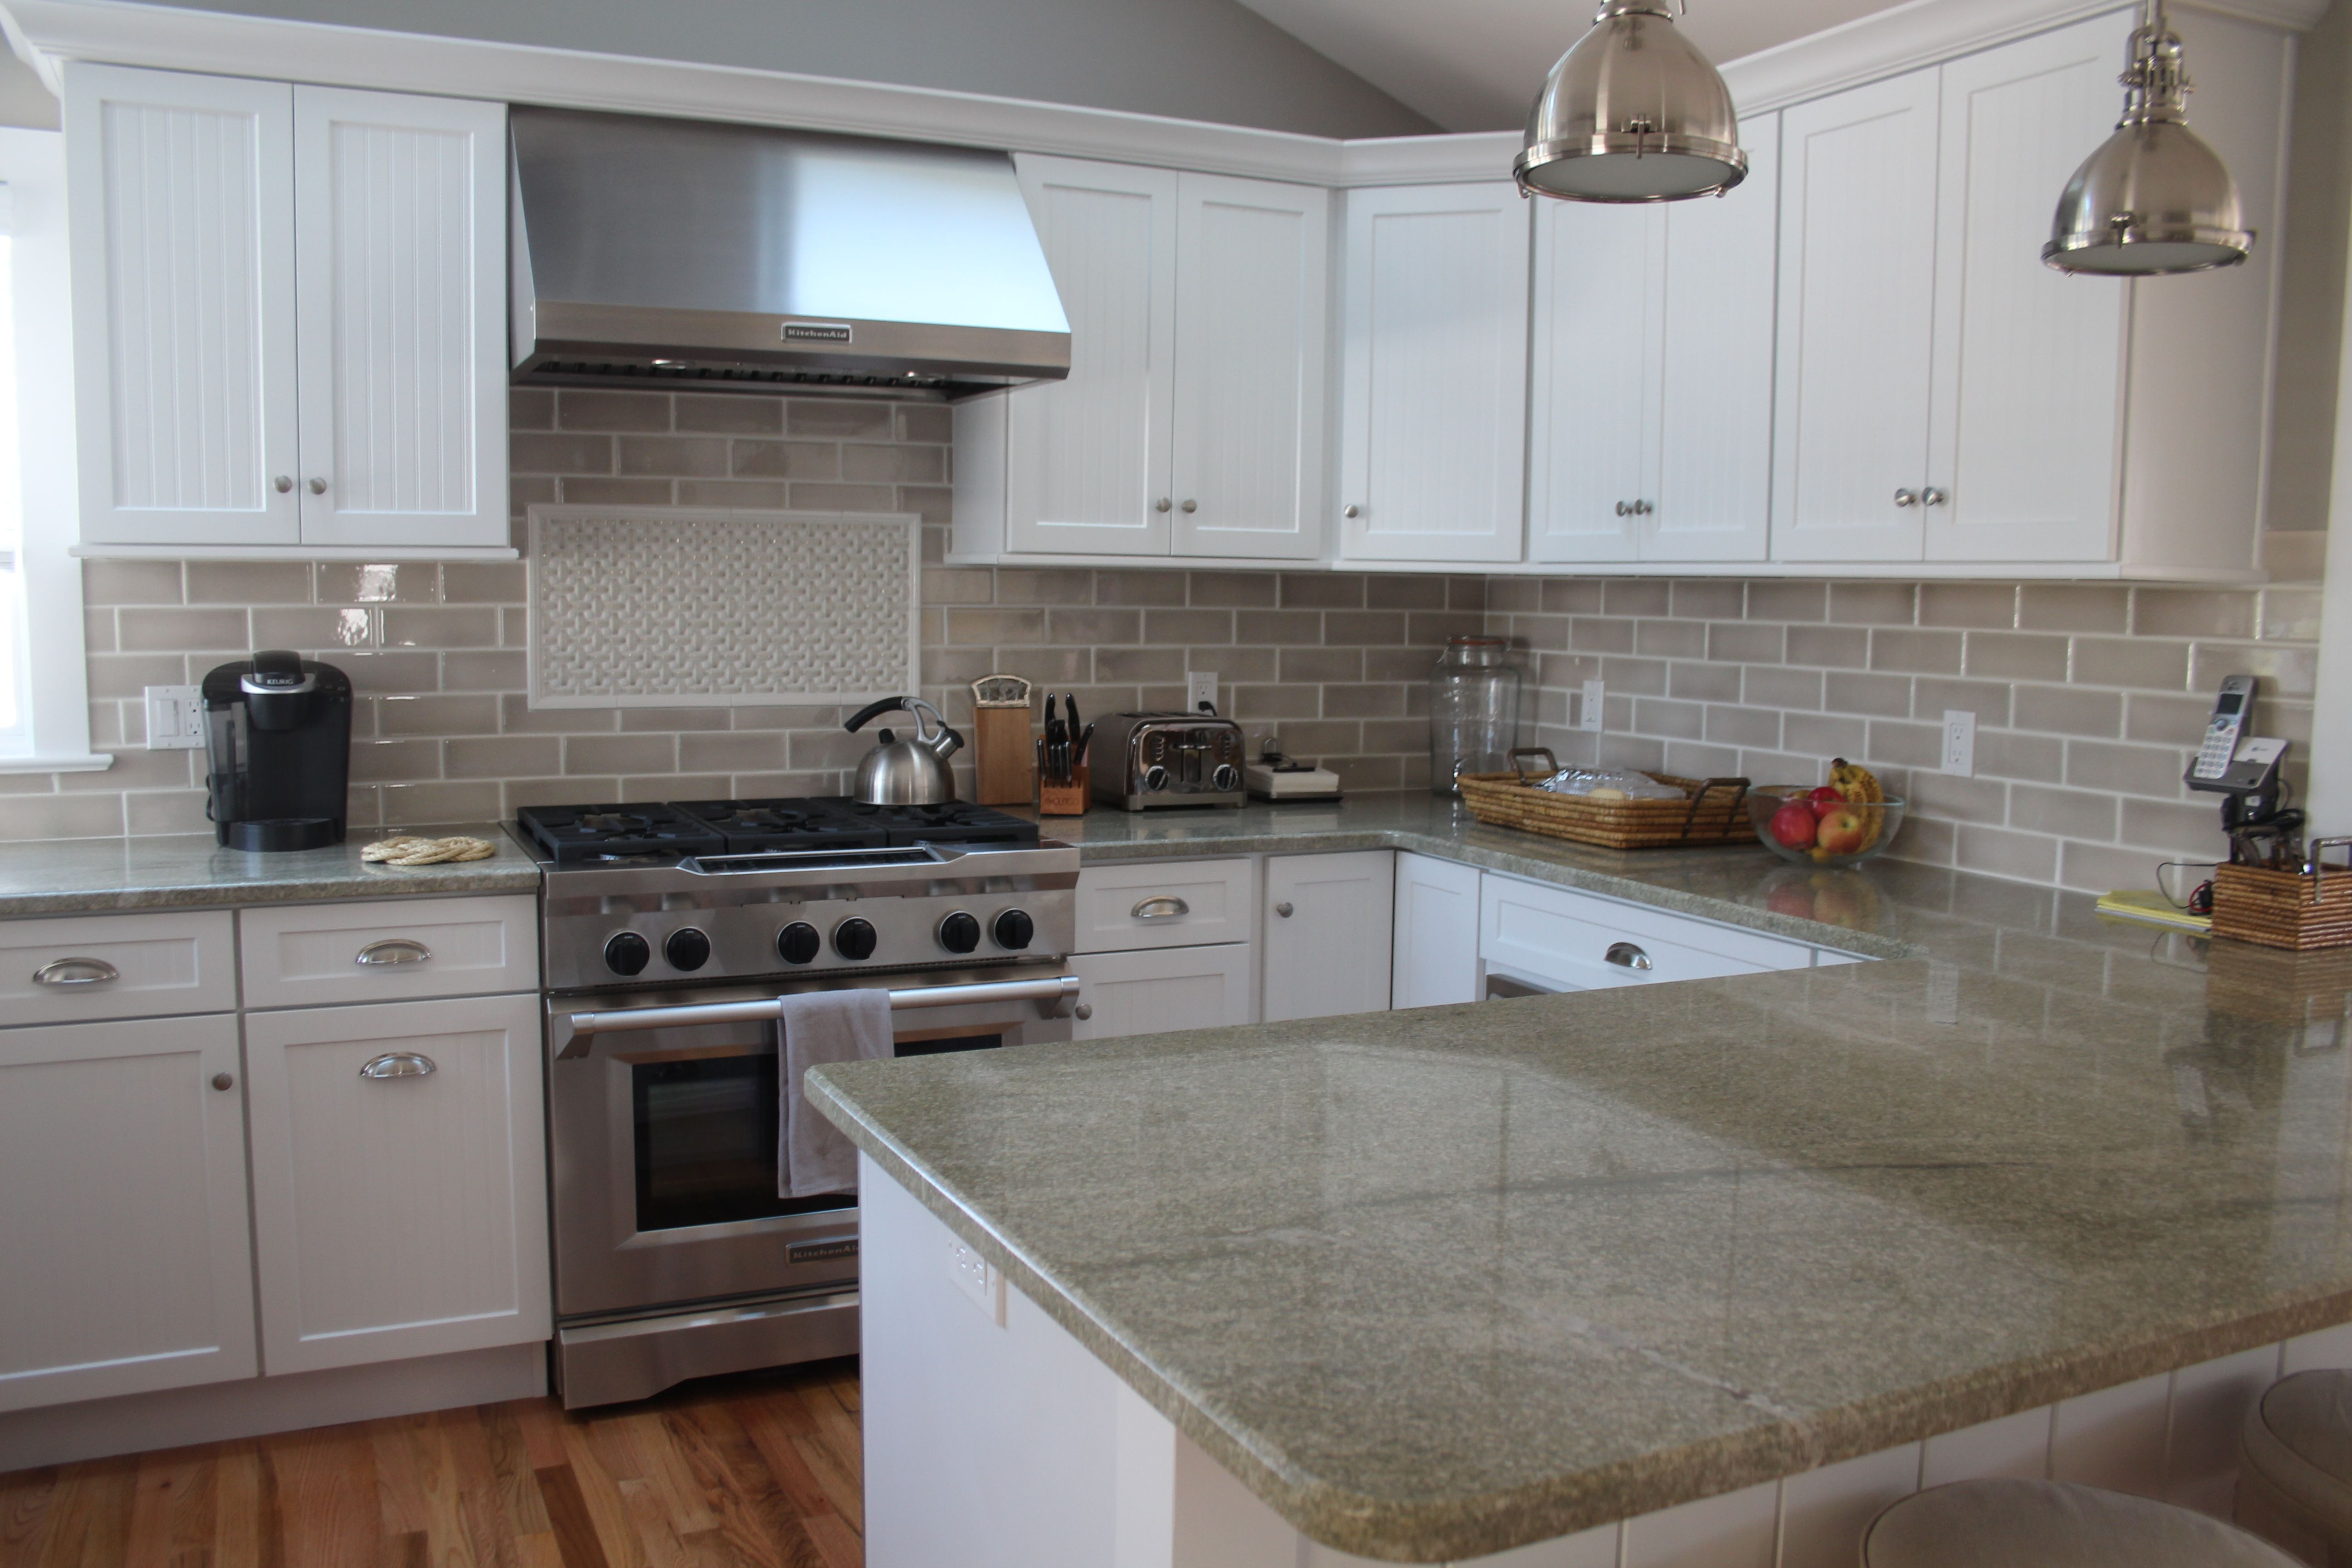 Discount Granite Countertops Nj This Kitchen Features Coast Green Granite Countertops And